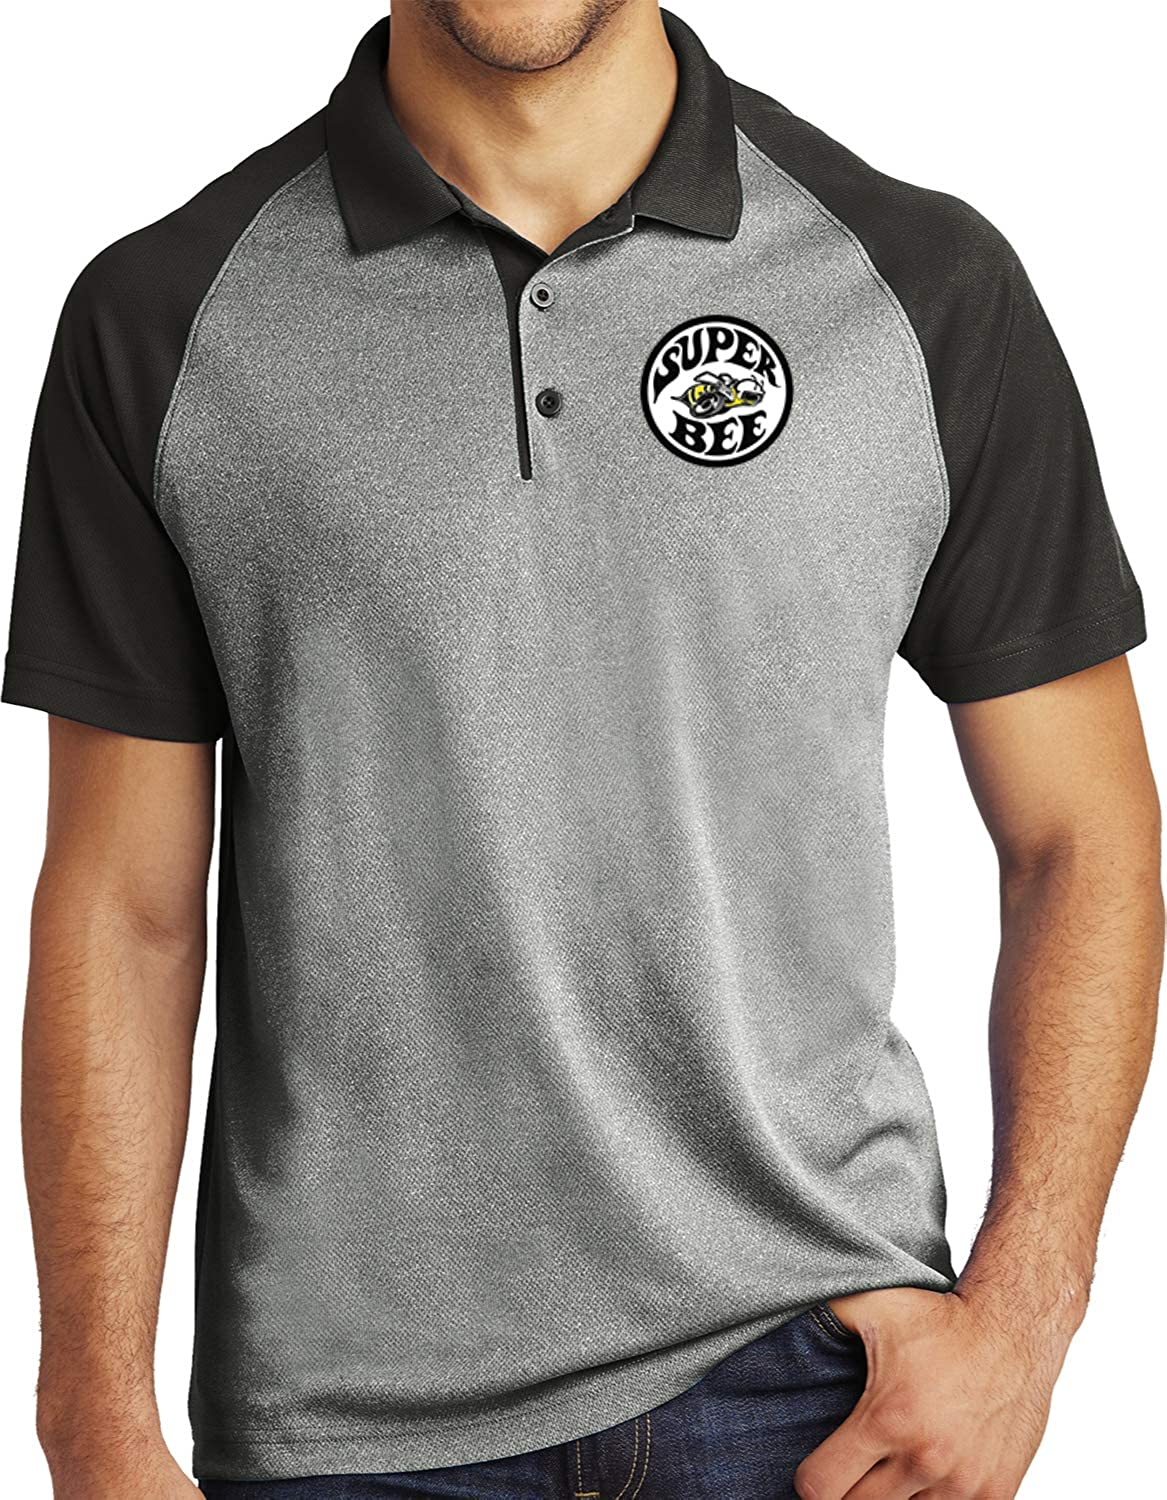 Dodge Raglan Polo Super Bee Circle Logo Pocket Print